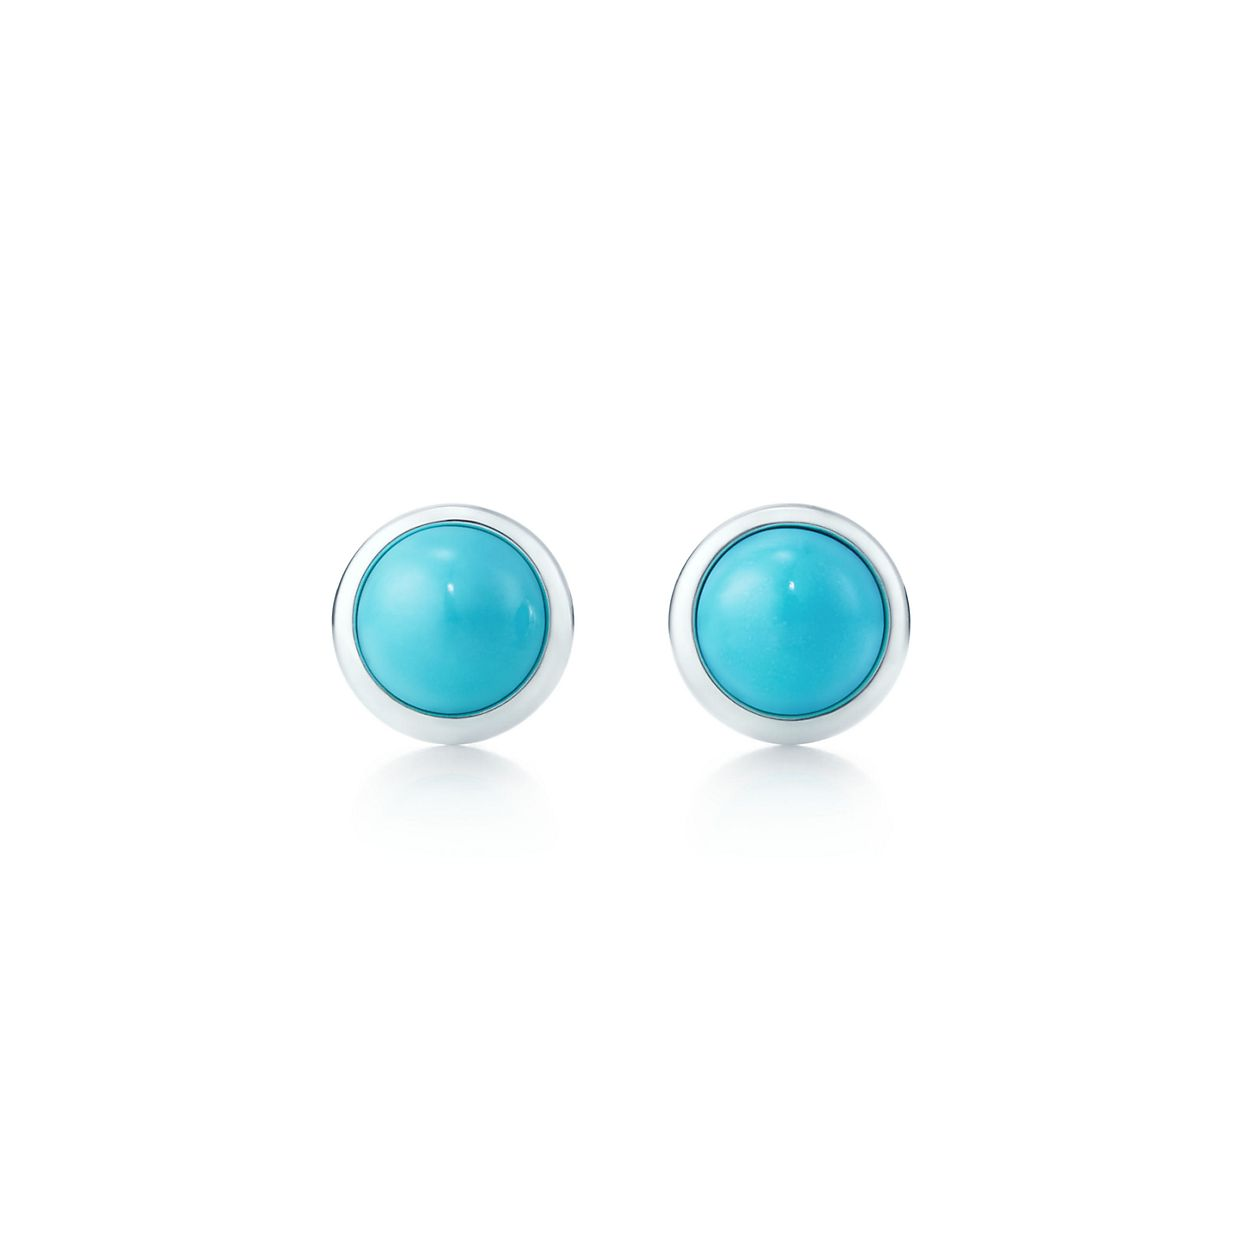 Elsa Peretti Color by the Yard earrings in silver with turquoise Tiffany & Co. ms8GJQ